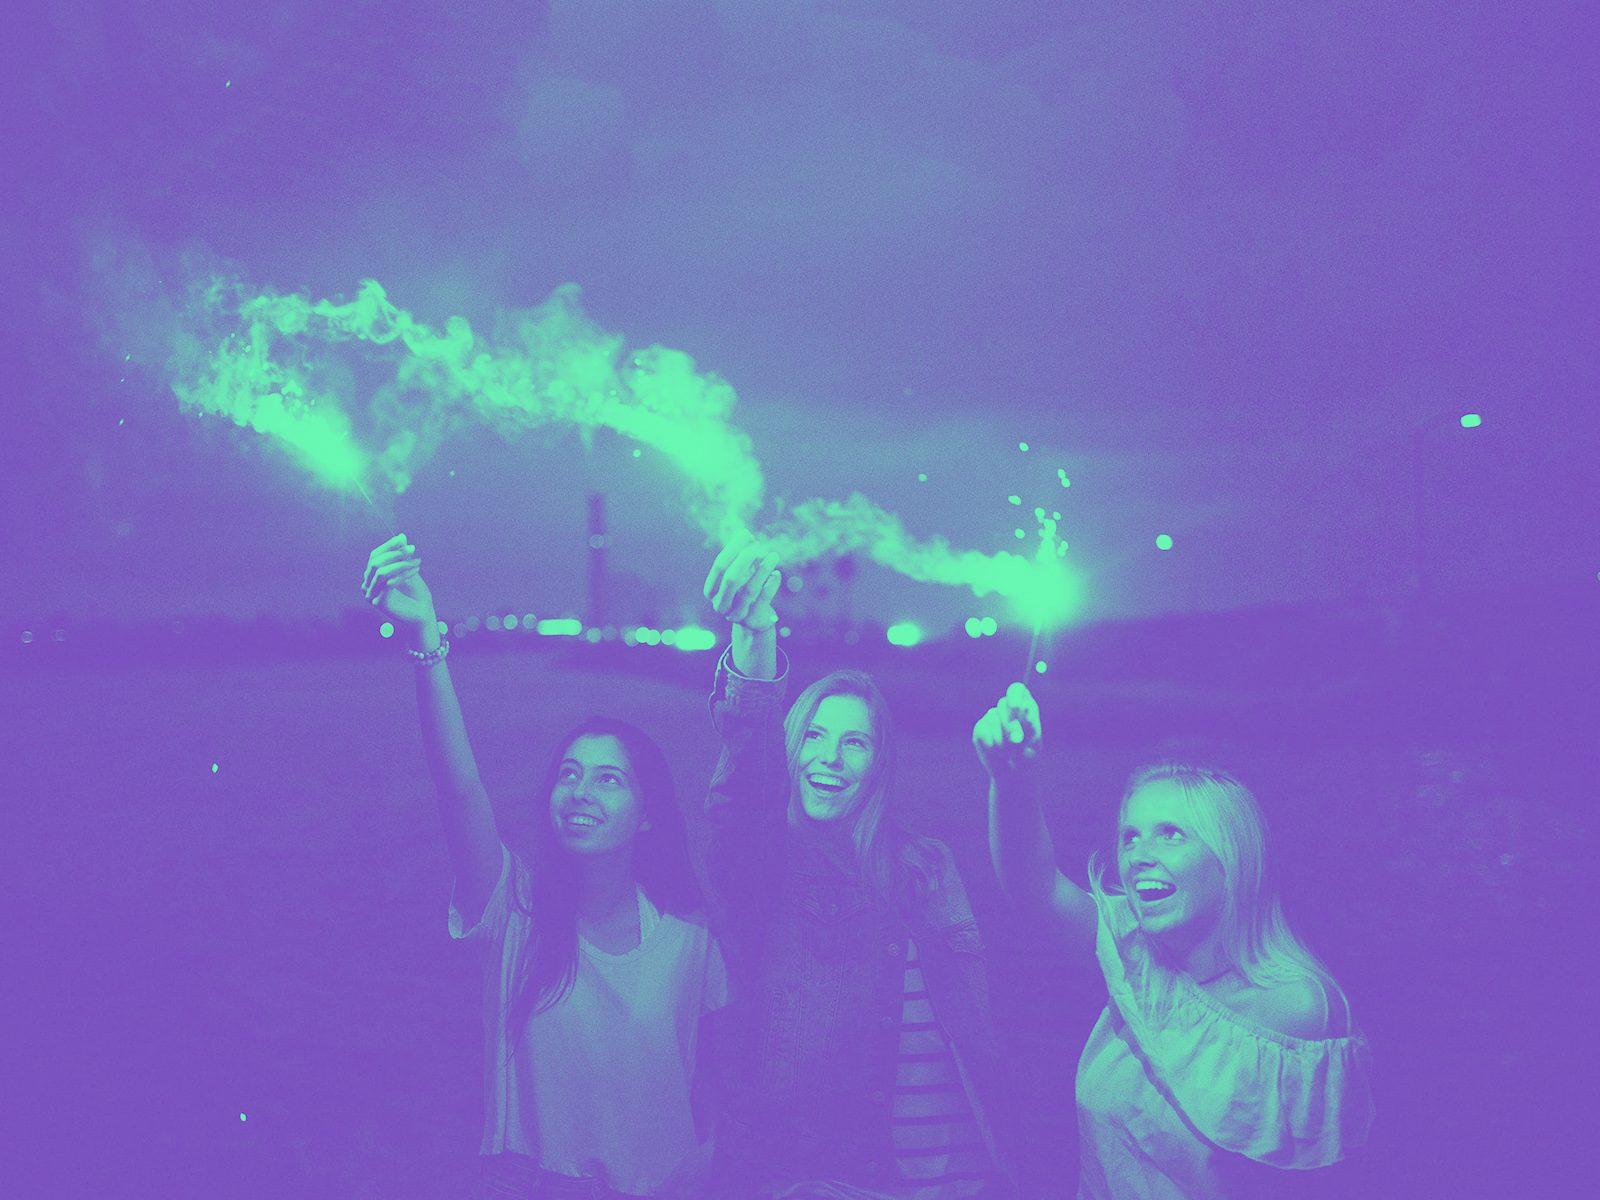 Three women smiling holding sparklers